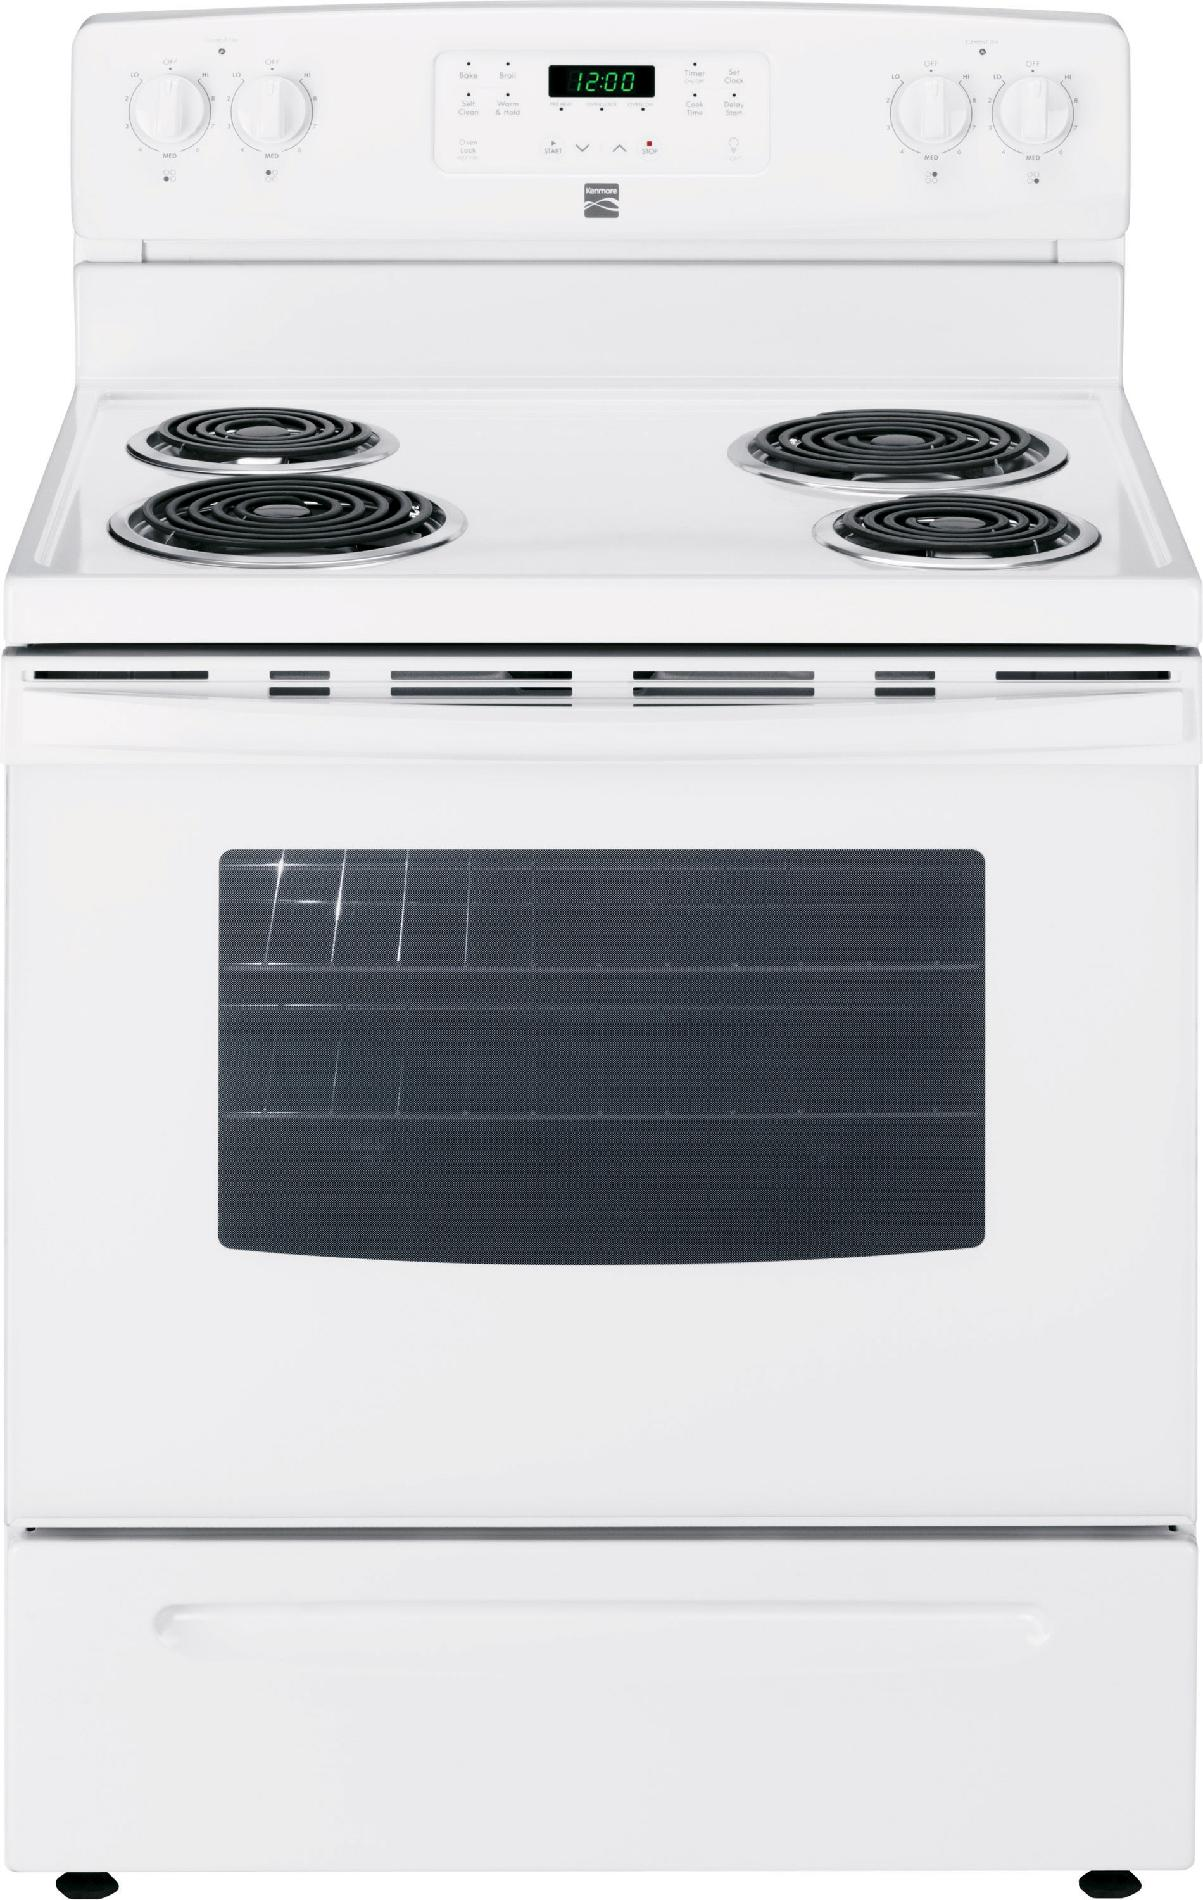 Herd Ofen Kenmore 94142 5 3 Cu Ft Electric Range W Self Cleaning